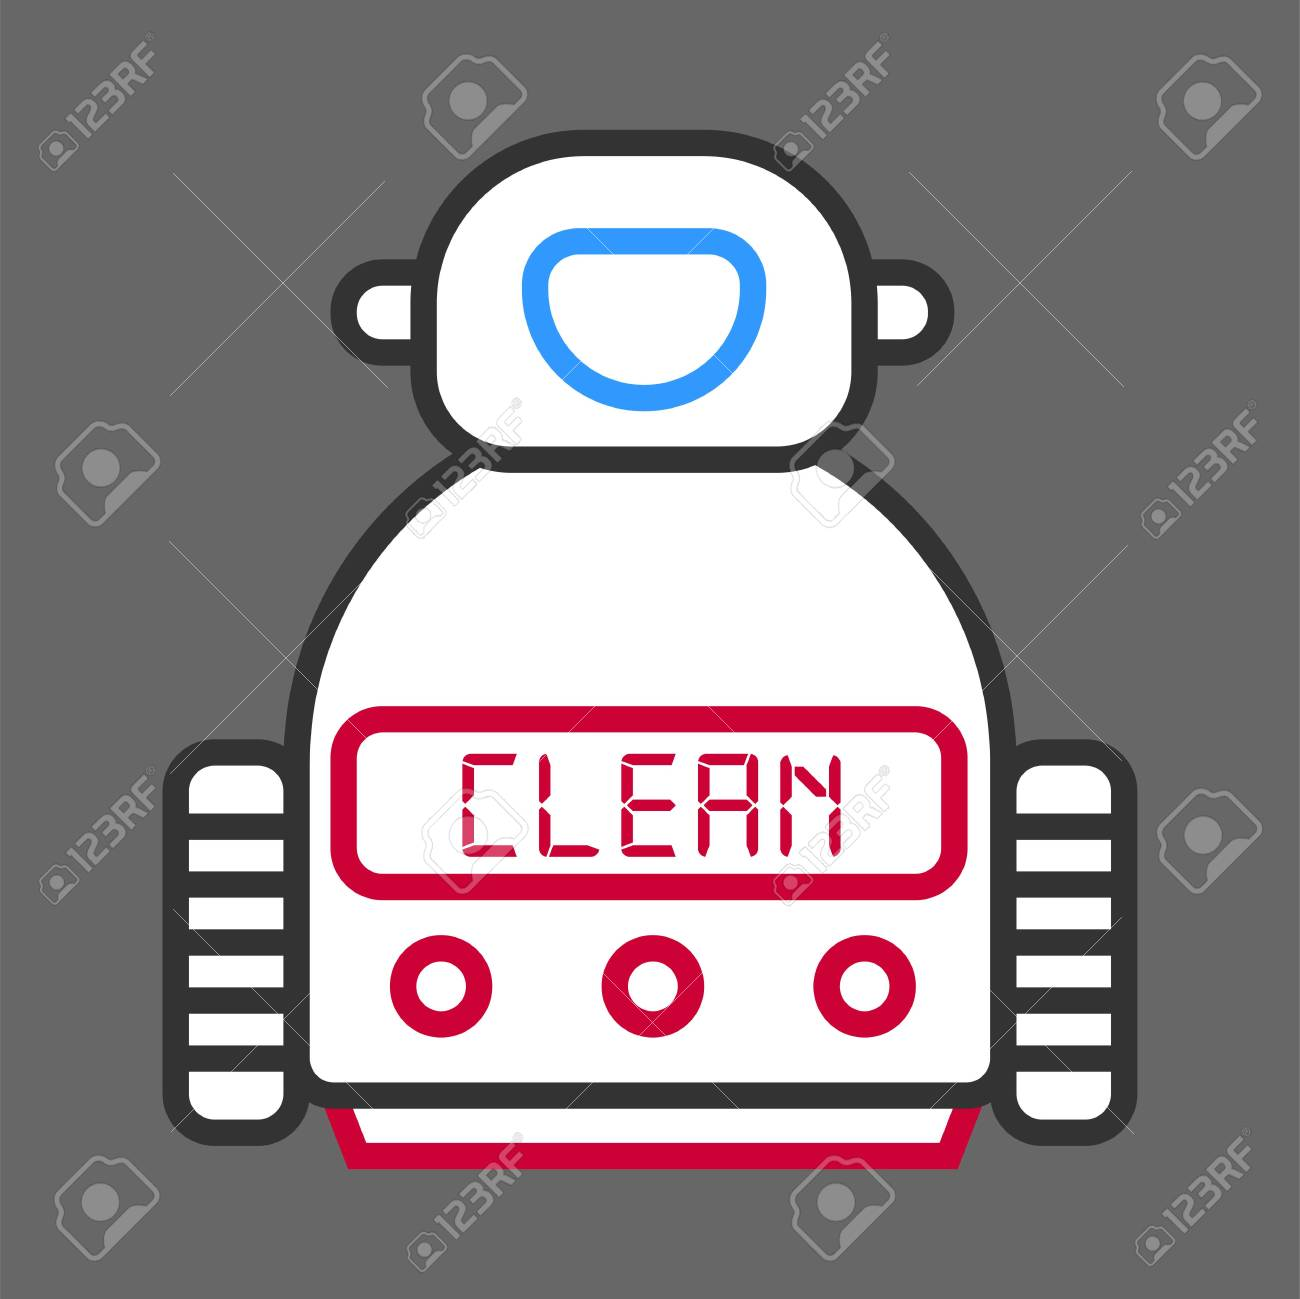 Robot Machine For Cleaning Isolated On Grey Background. Vector ...